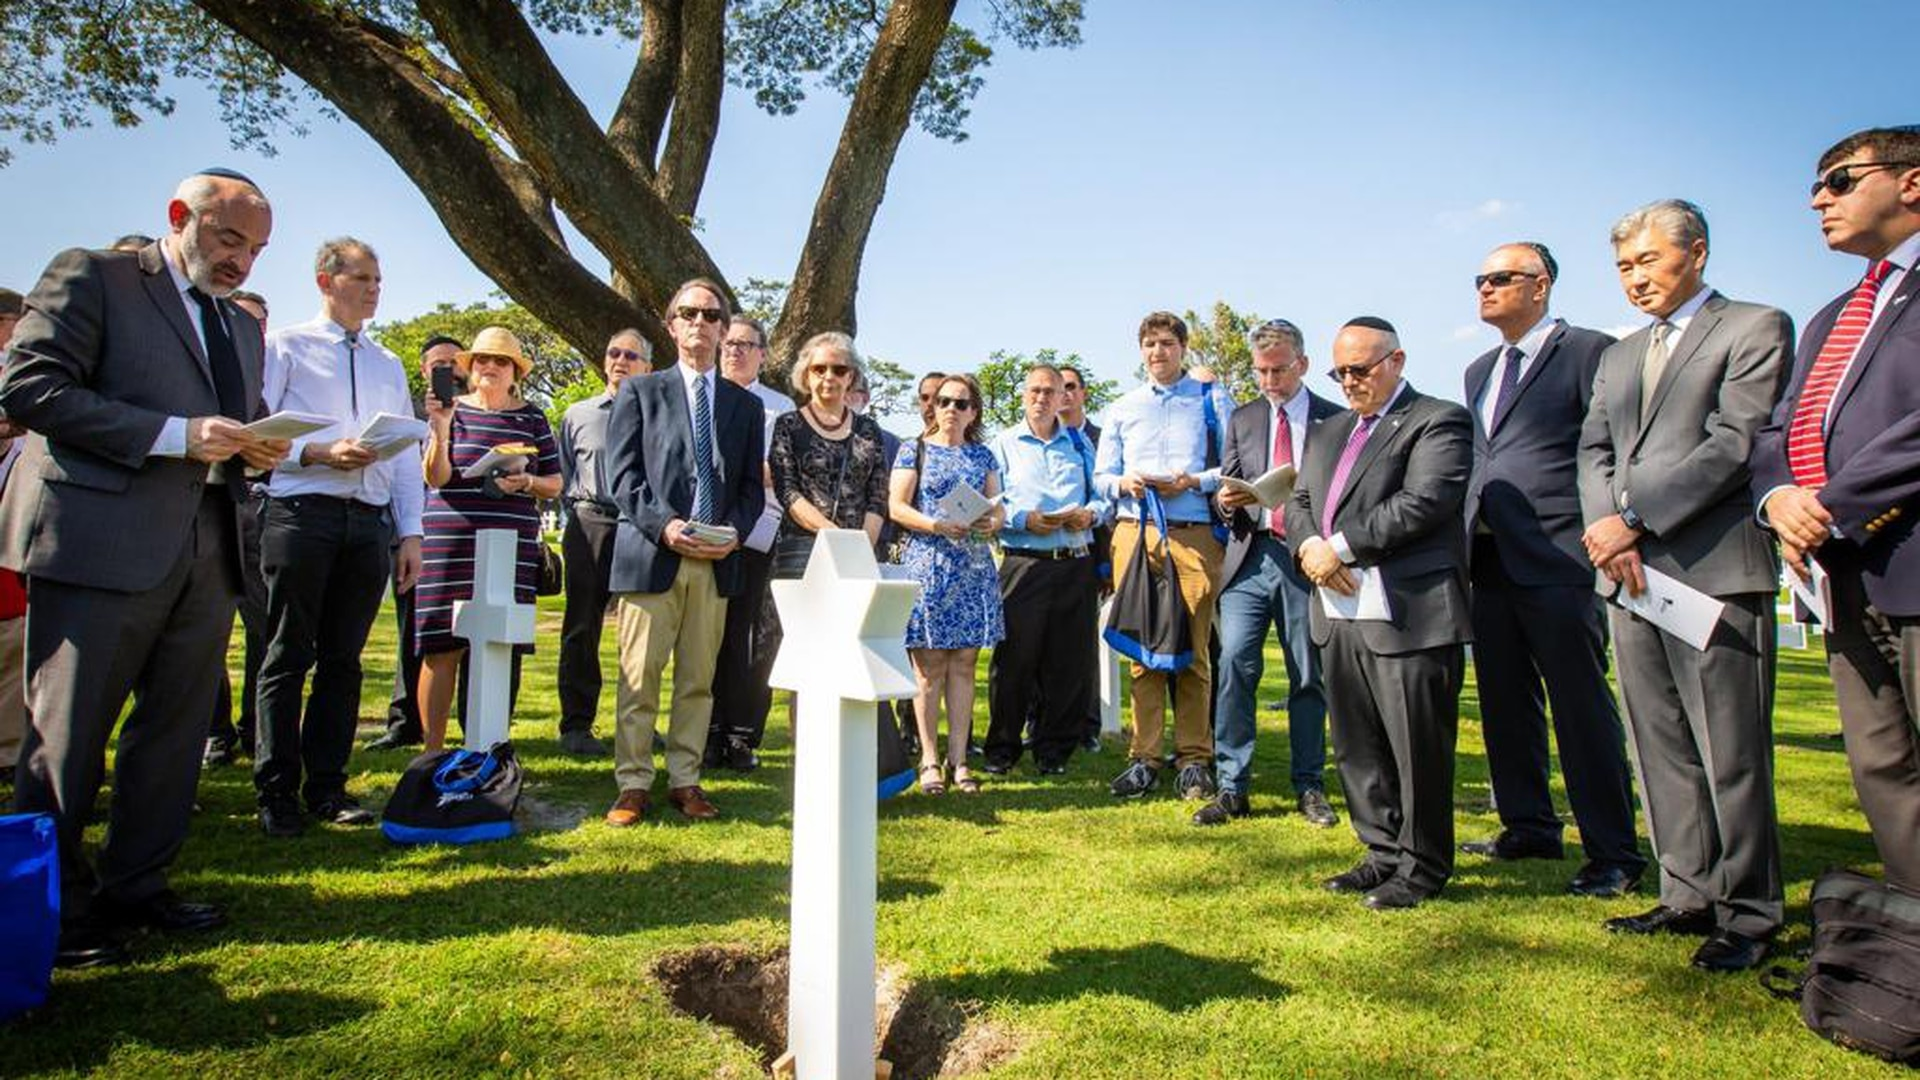 Living relatives, government officials and Operation Benjamin members gather for a rededication ceremony for five Jewish-American service members killed in action in World War II and buried under Latin Crosses at Manila American Cemetery in the Philippines, on Feb. 12, 2020. The nonprofit locates and rectifies cases of incorrect gravestones for deceased Jewish soldiers. (Courtesy of Operation Benjamin)